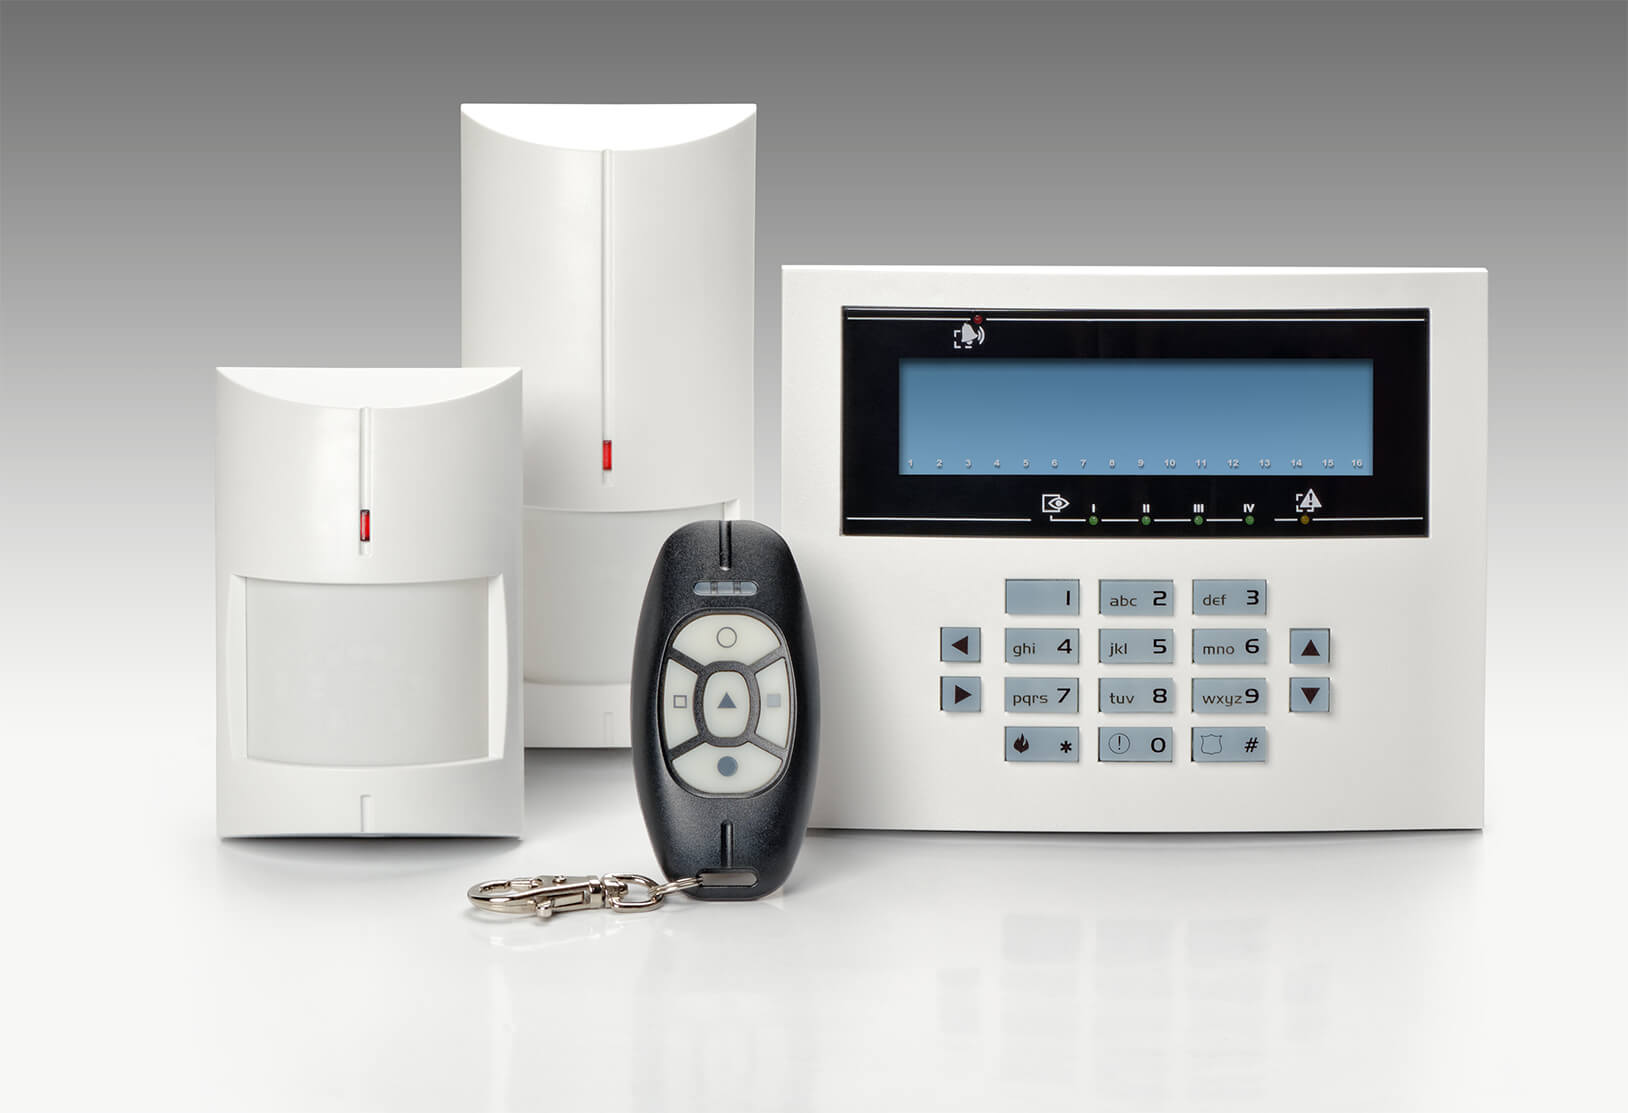 Business & Residential NACOSS Approved Burglar Alarms In St. Pancras WC1 - Local St. Pancras WC1 security company.Call 02078872244 - Dedicated to Safety & Security. Companies, shops and homes ..